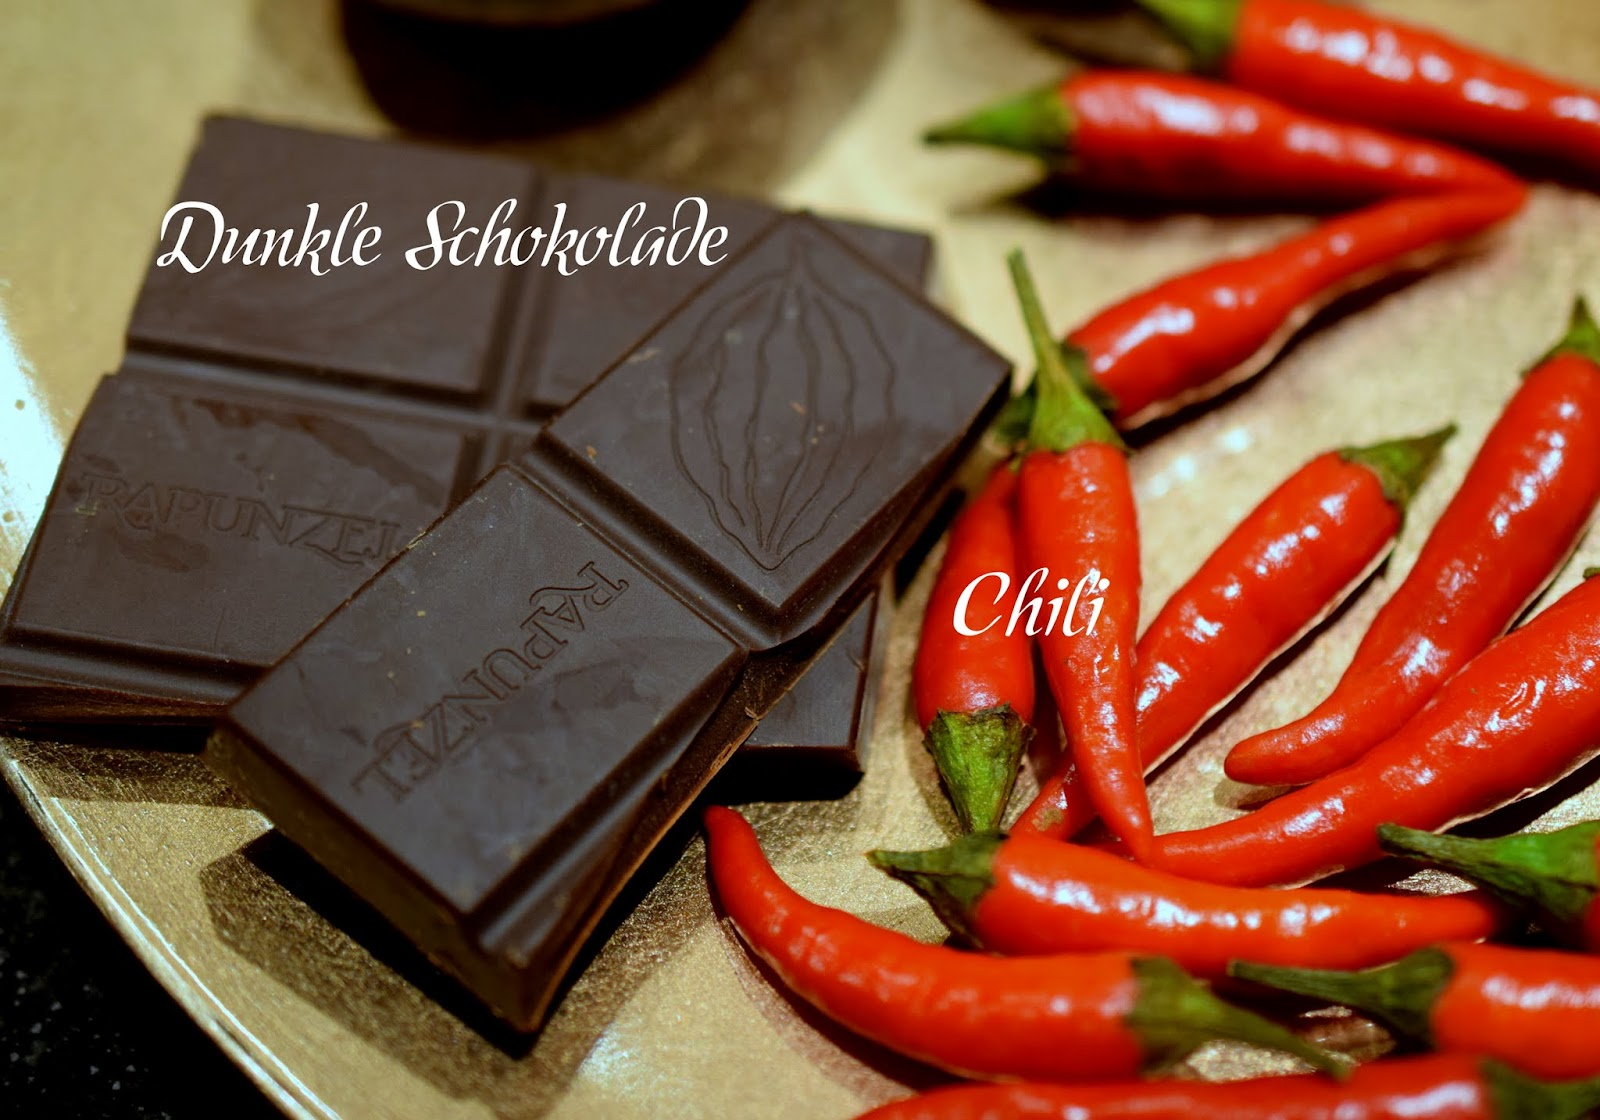 Top 10 Mood Foods Dunkle Schokolade Chili